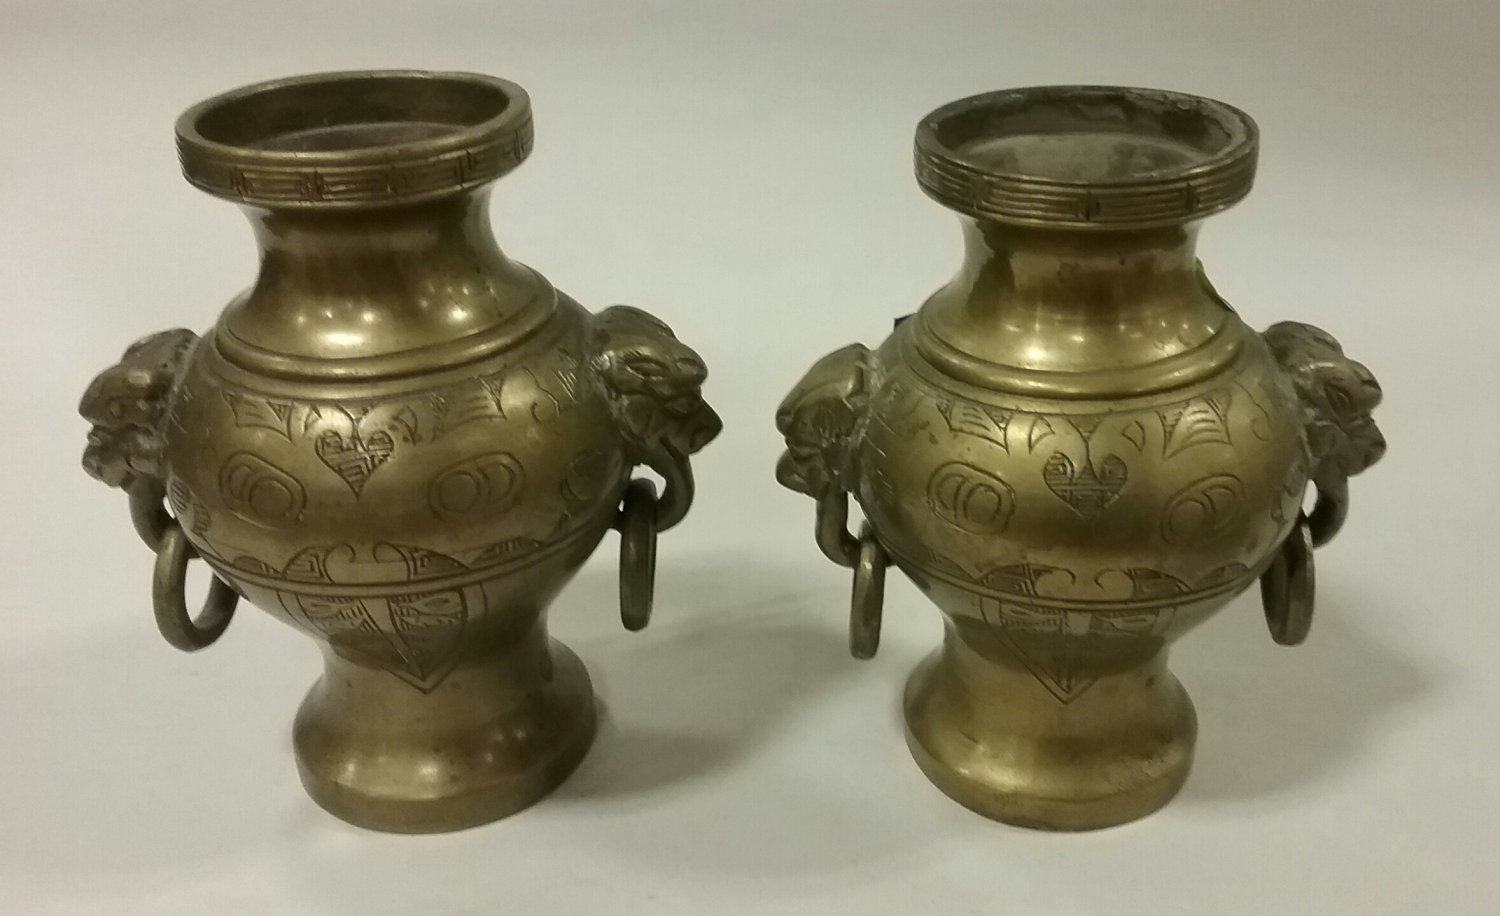 Pair of Chinese brass vases with lion face ring handles